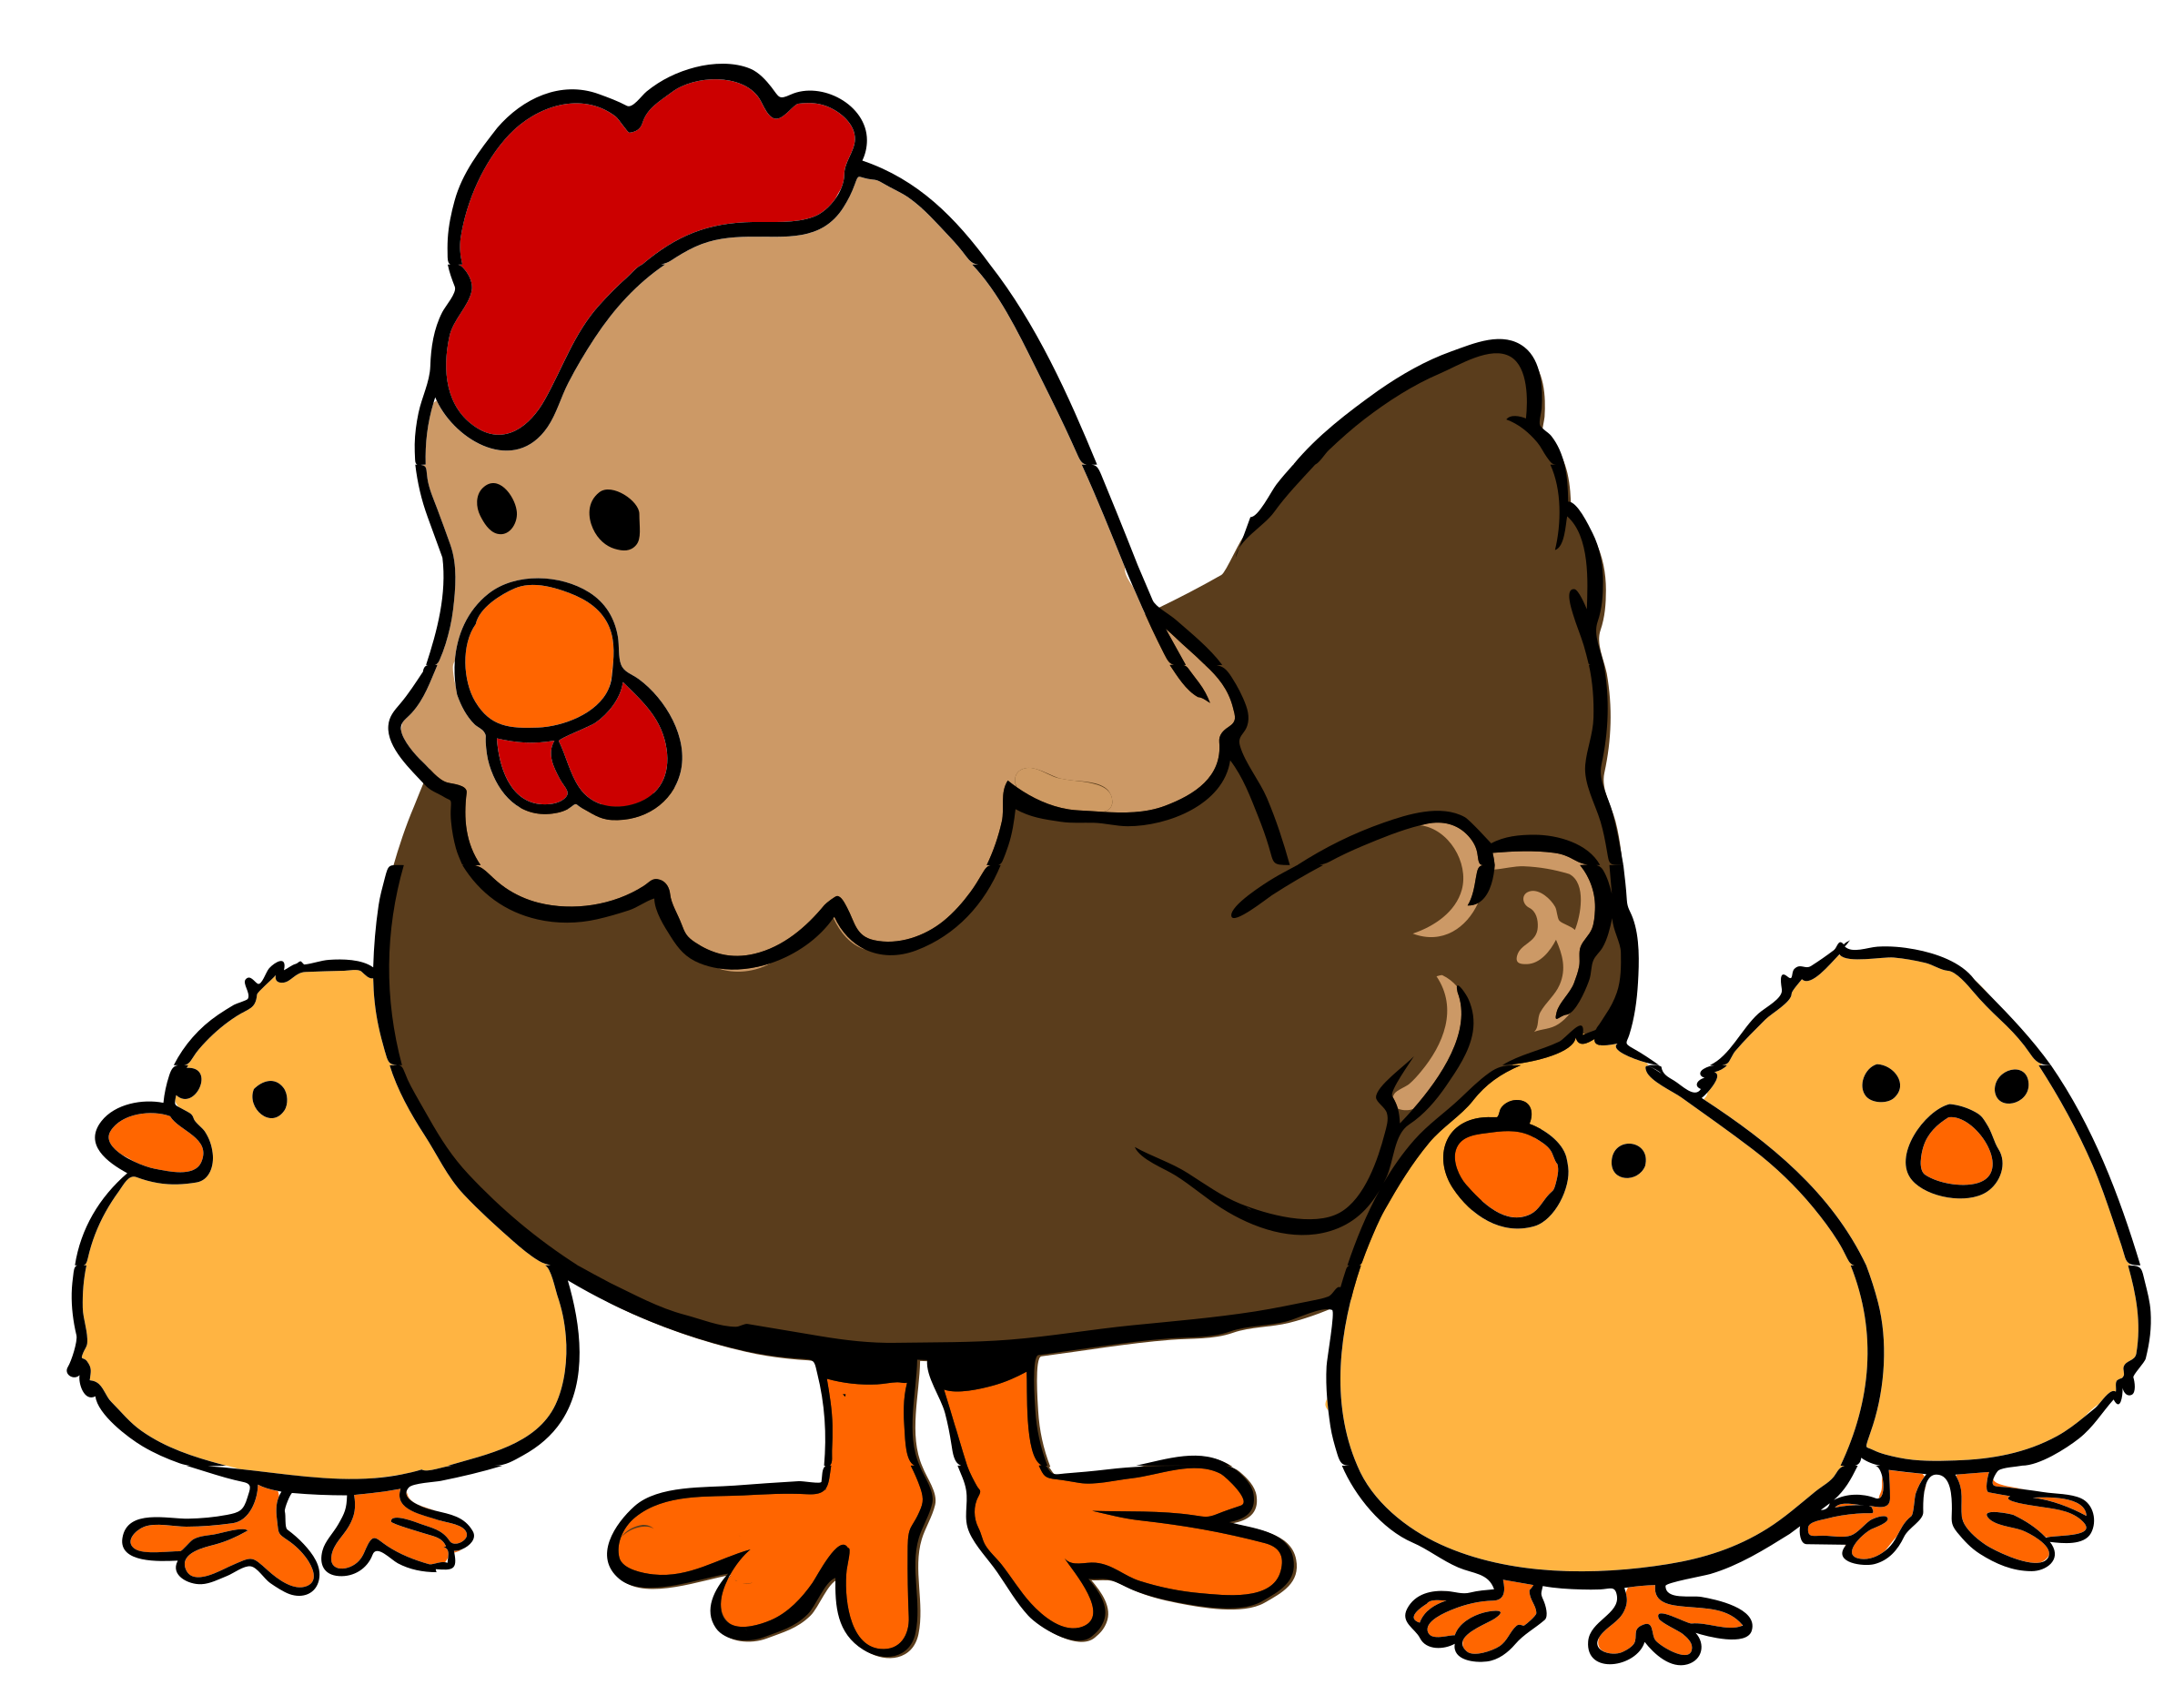 Chicken Clipart at GetDrawings.com | Free for personal use Chicken ... png freeuse stock